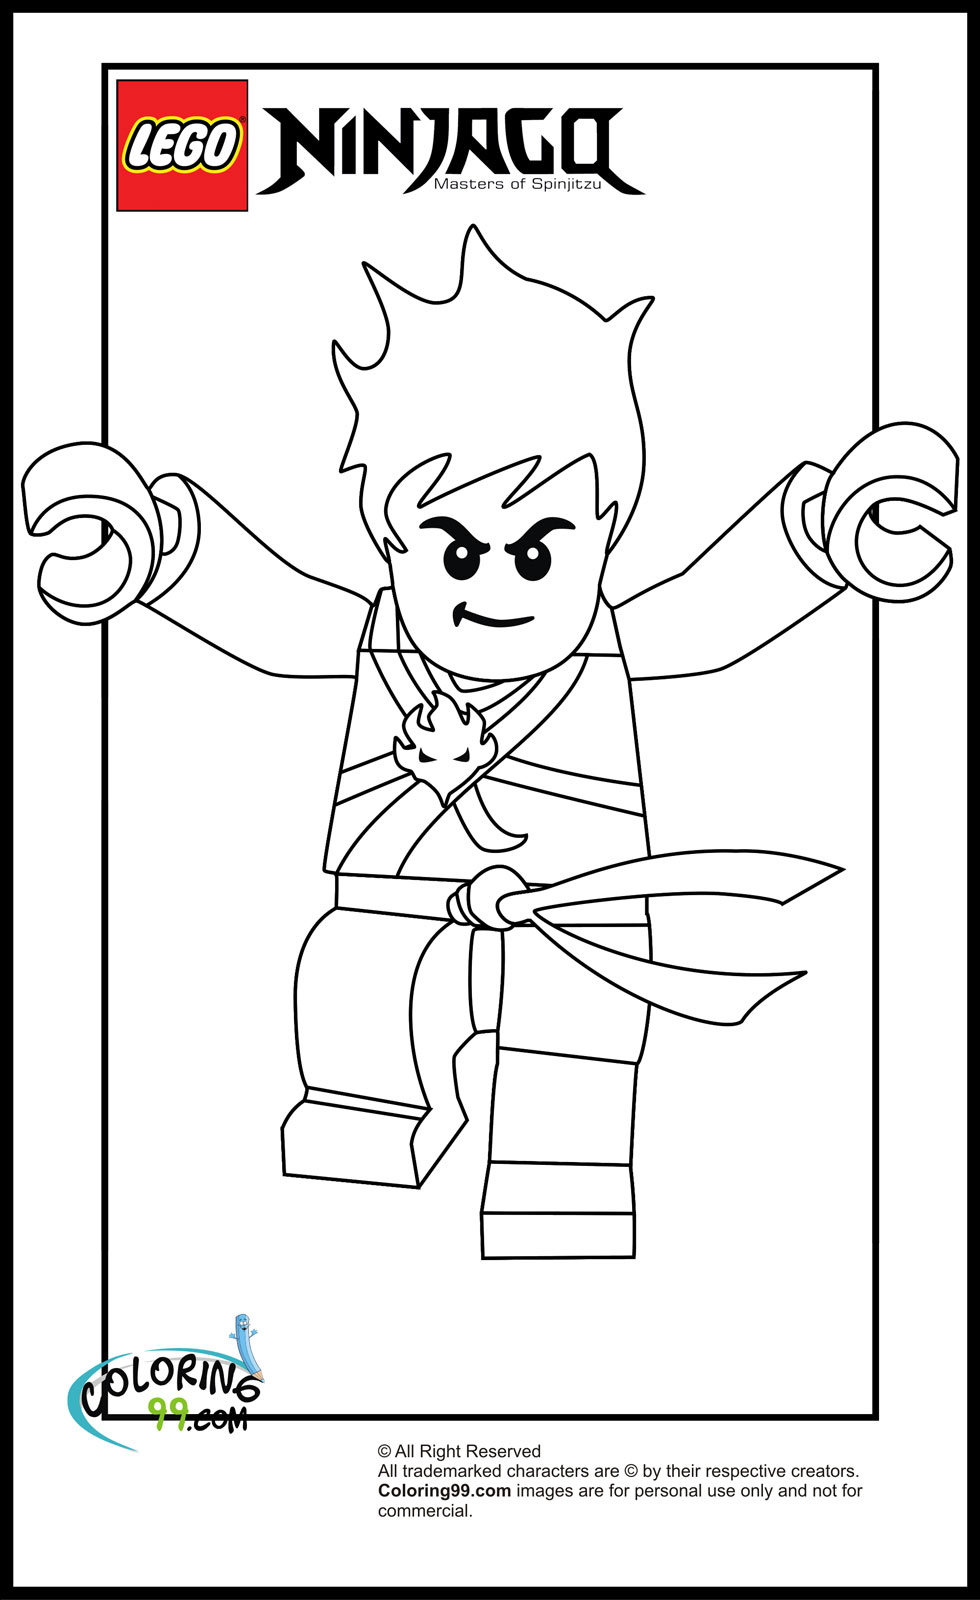 LEGO Ninjago Kai Coloring Pages | Team colors